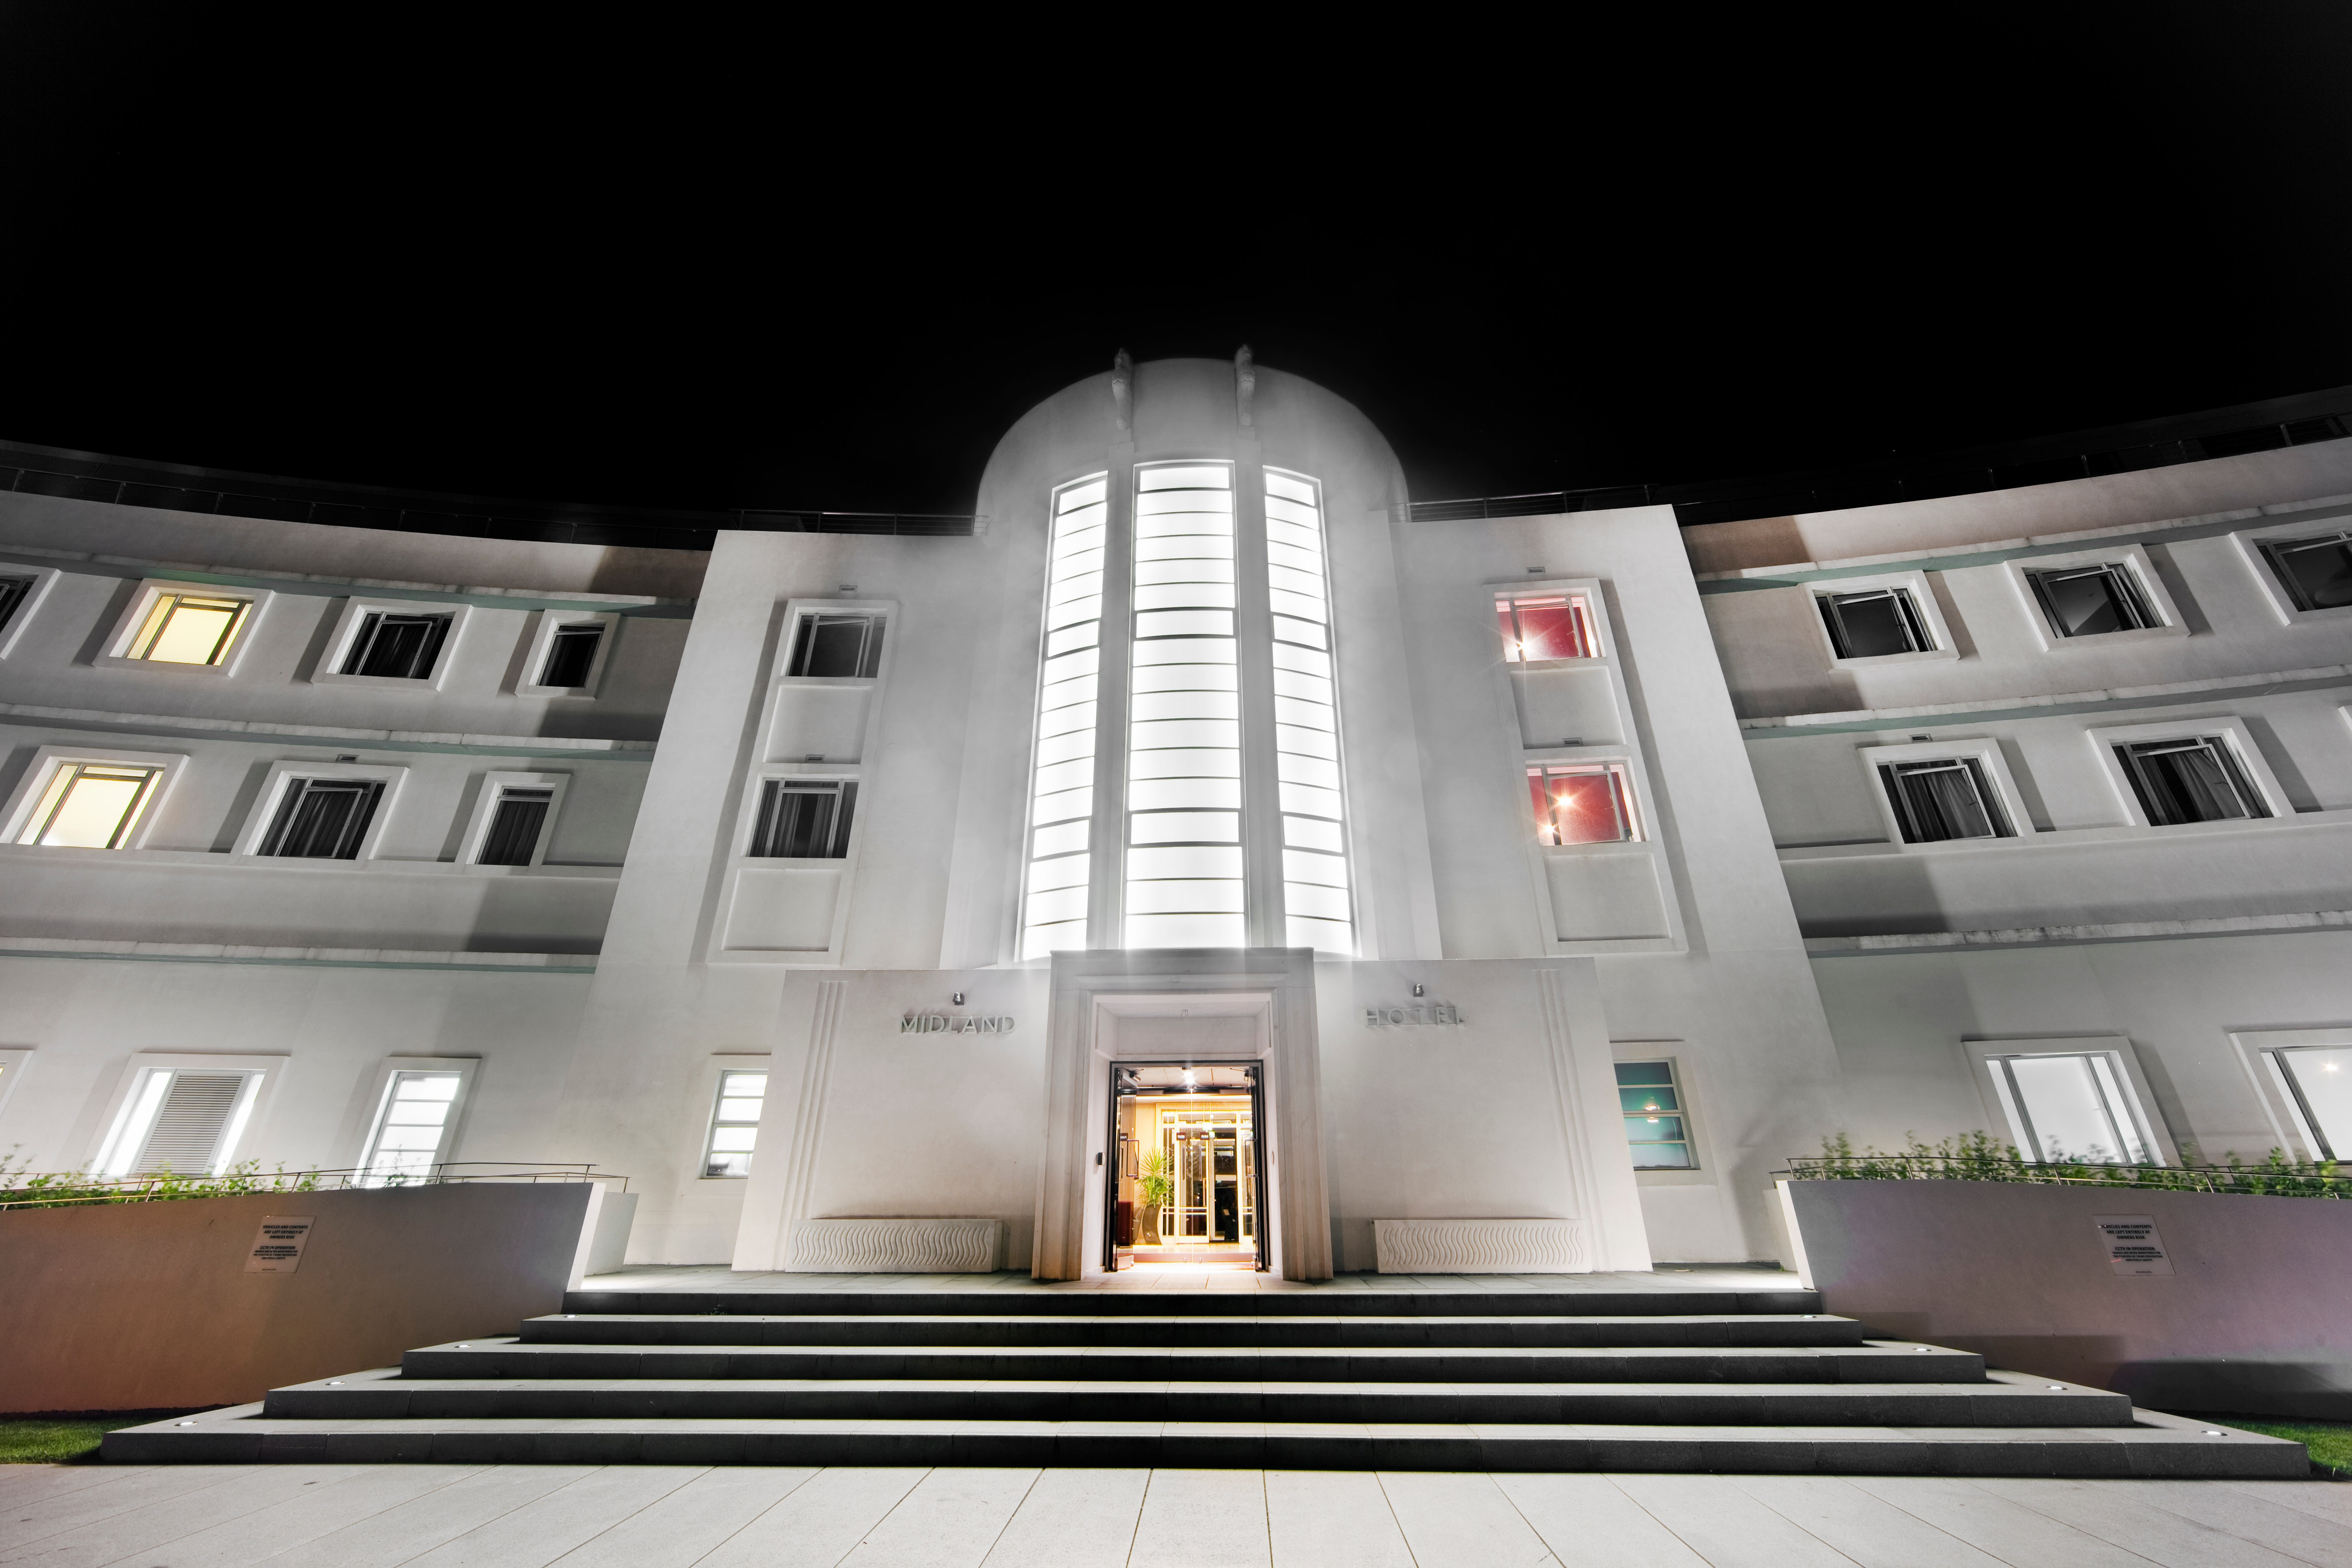 Entrance of the Midland Hotel, Morecambe